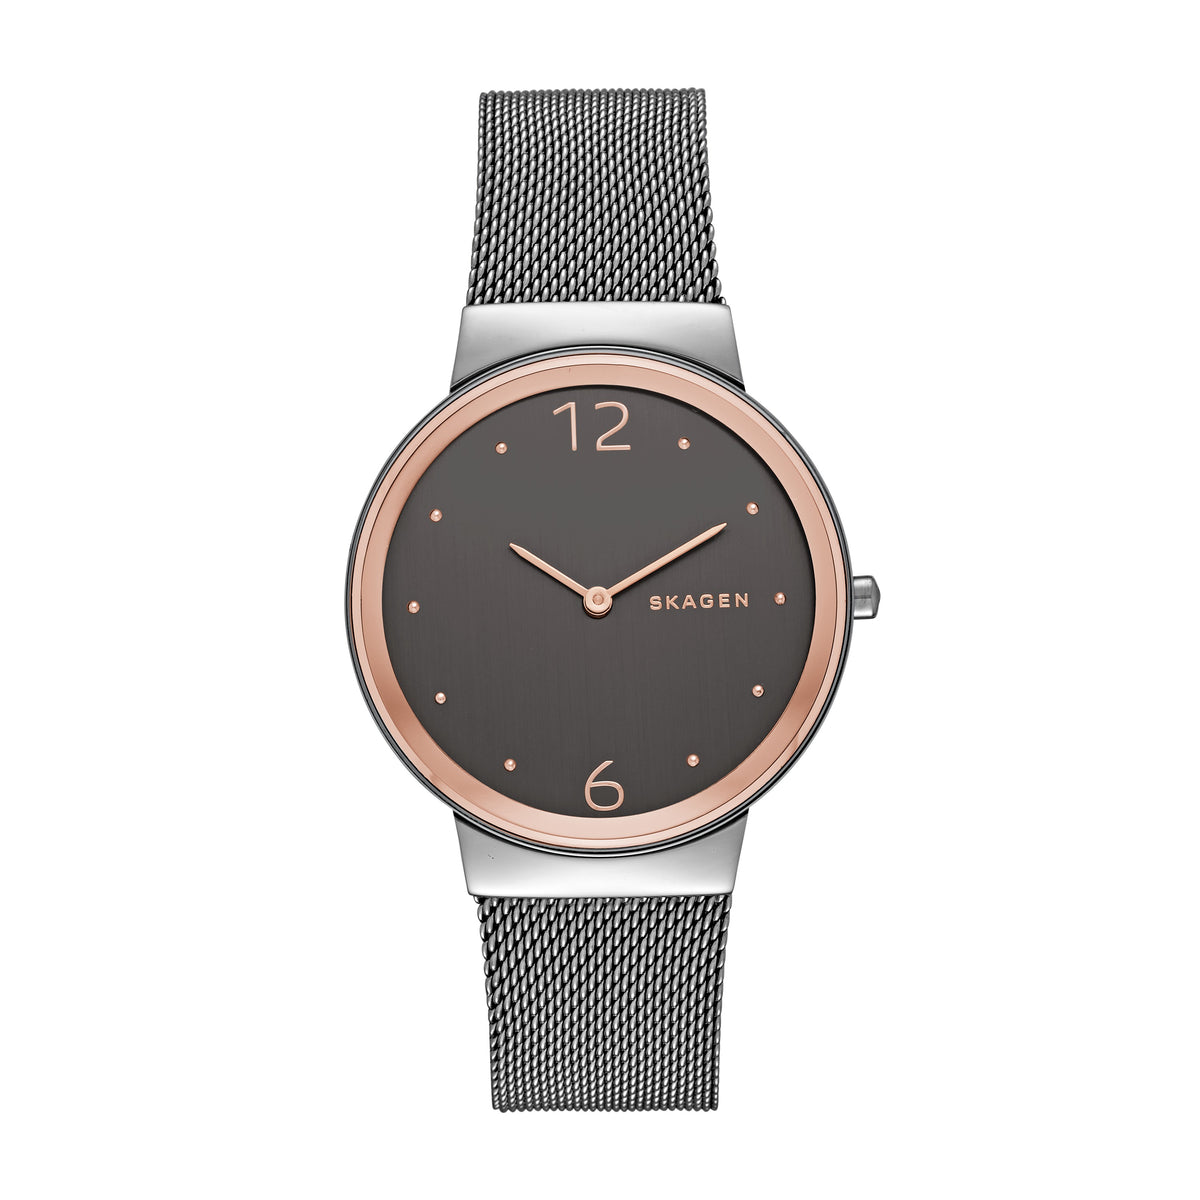 Skagen - Freja Gray Steel-Mesh Watch